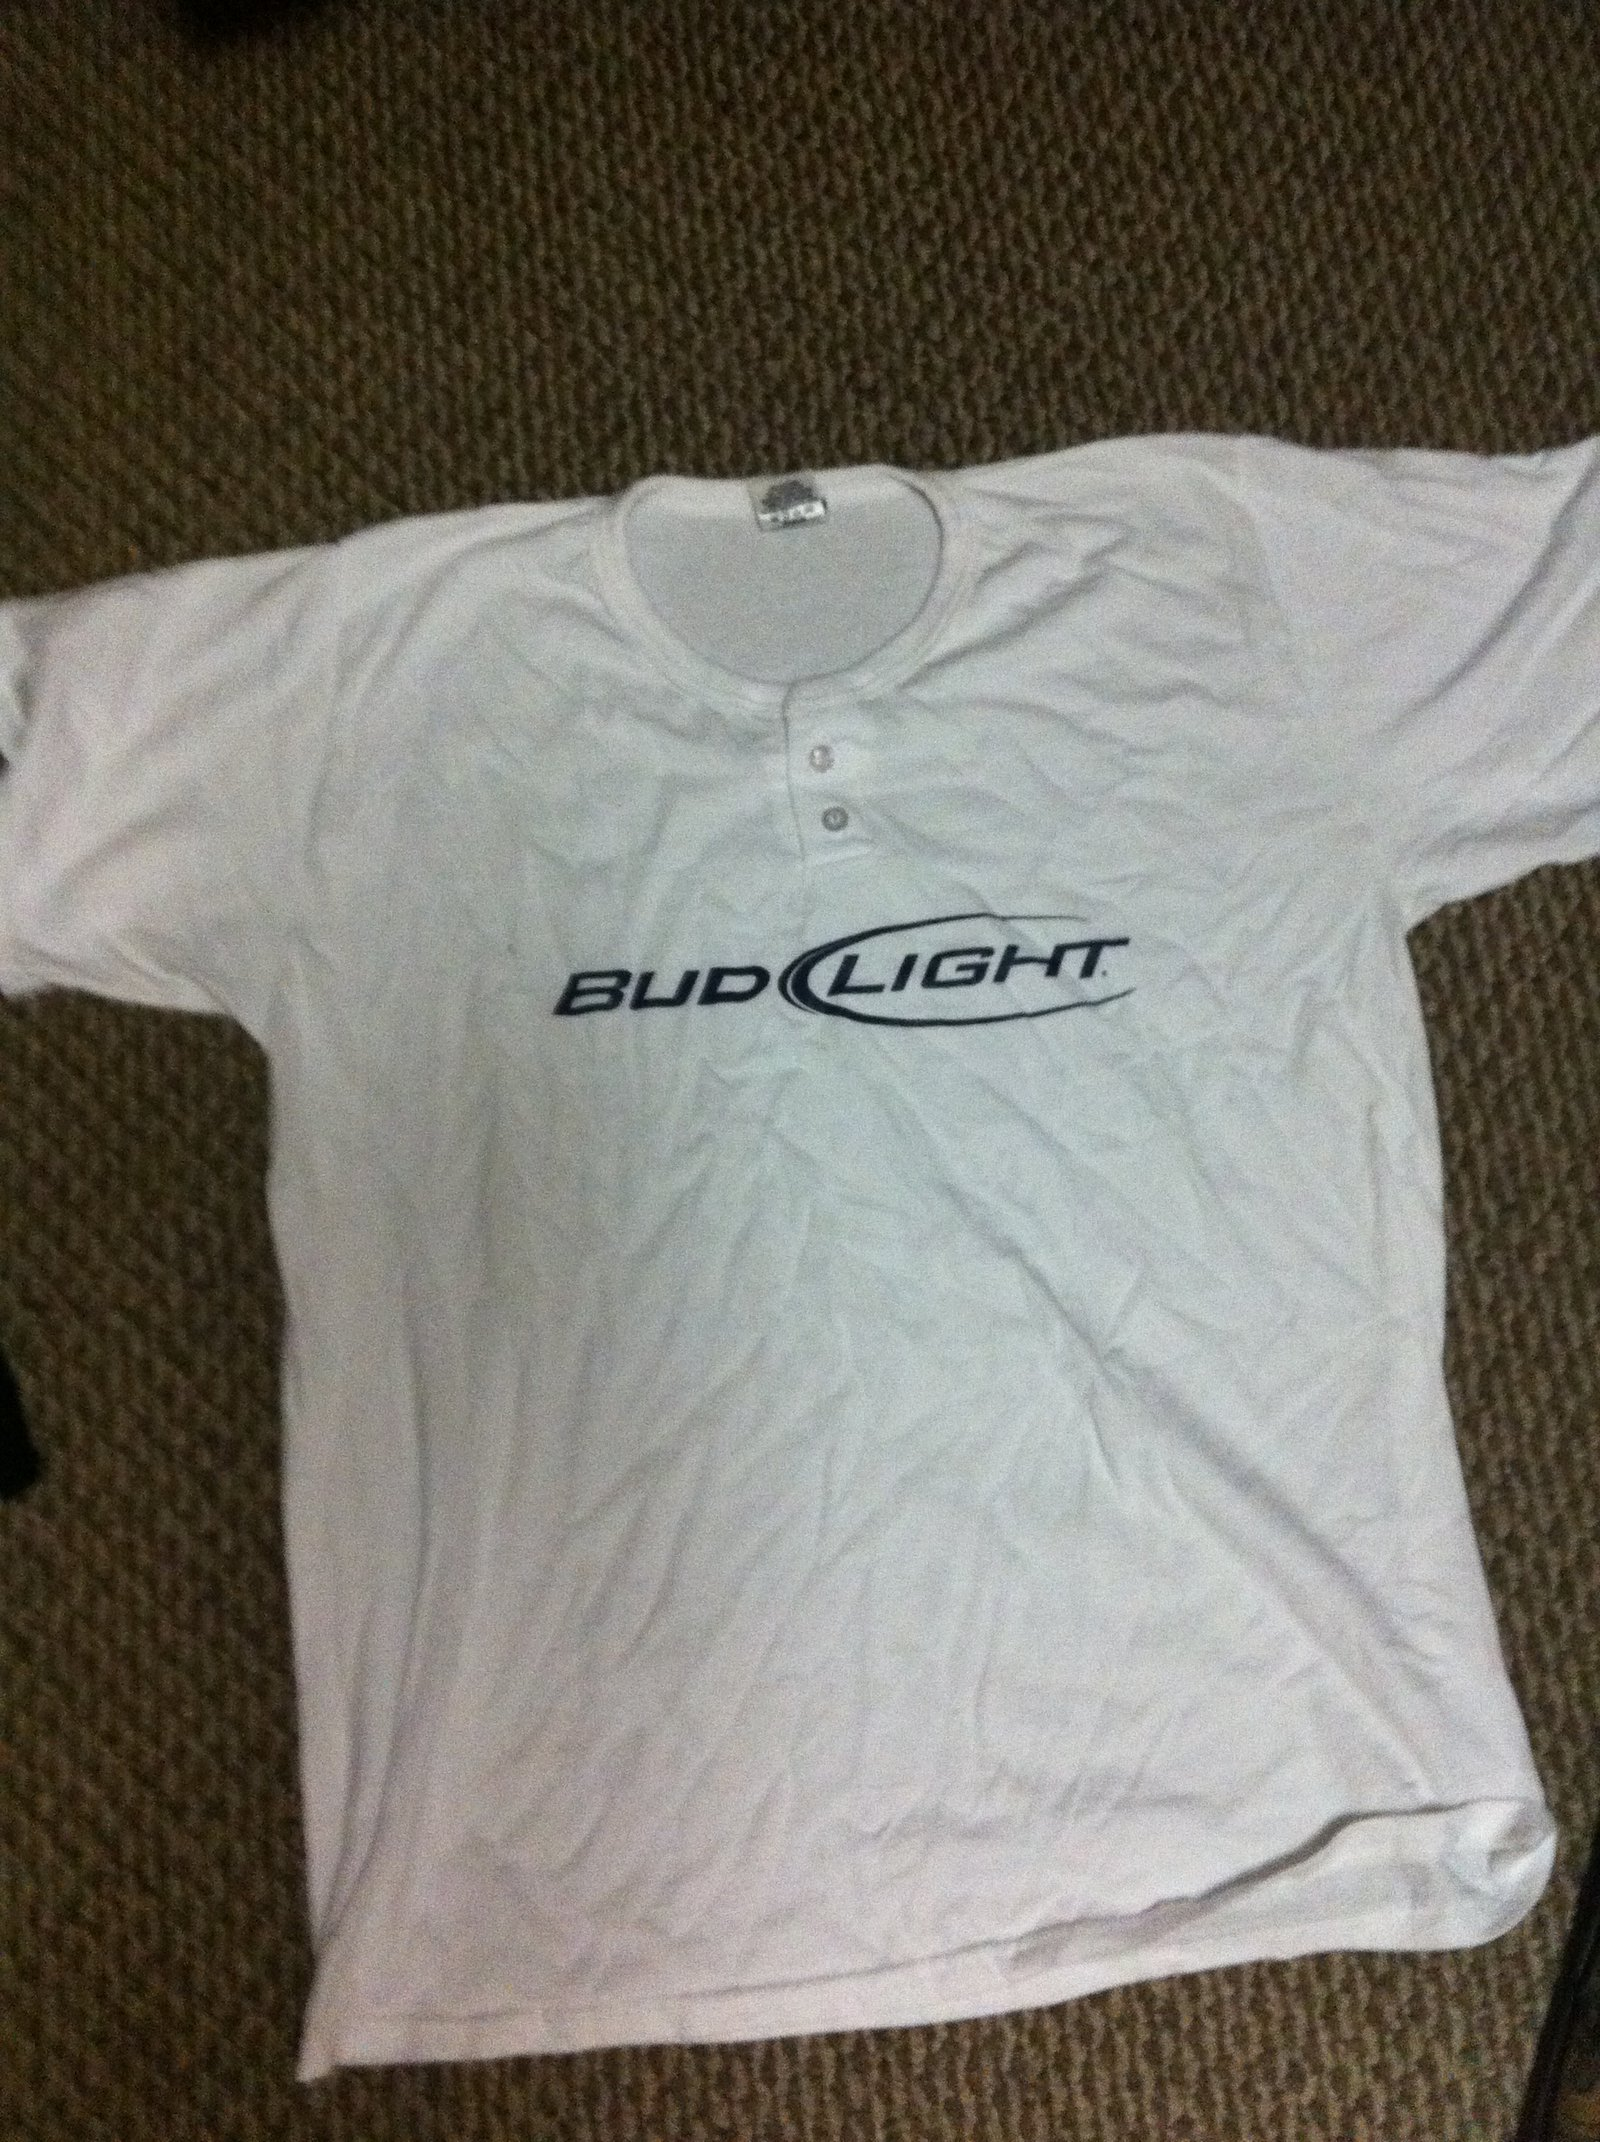 bud light shirt